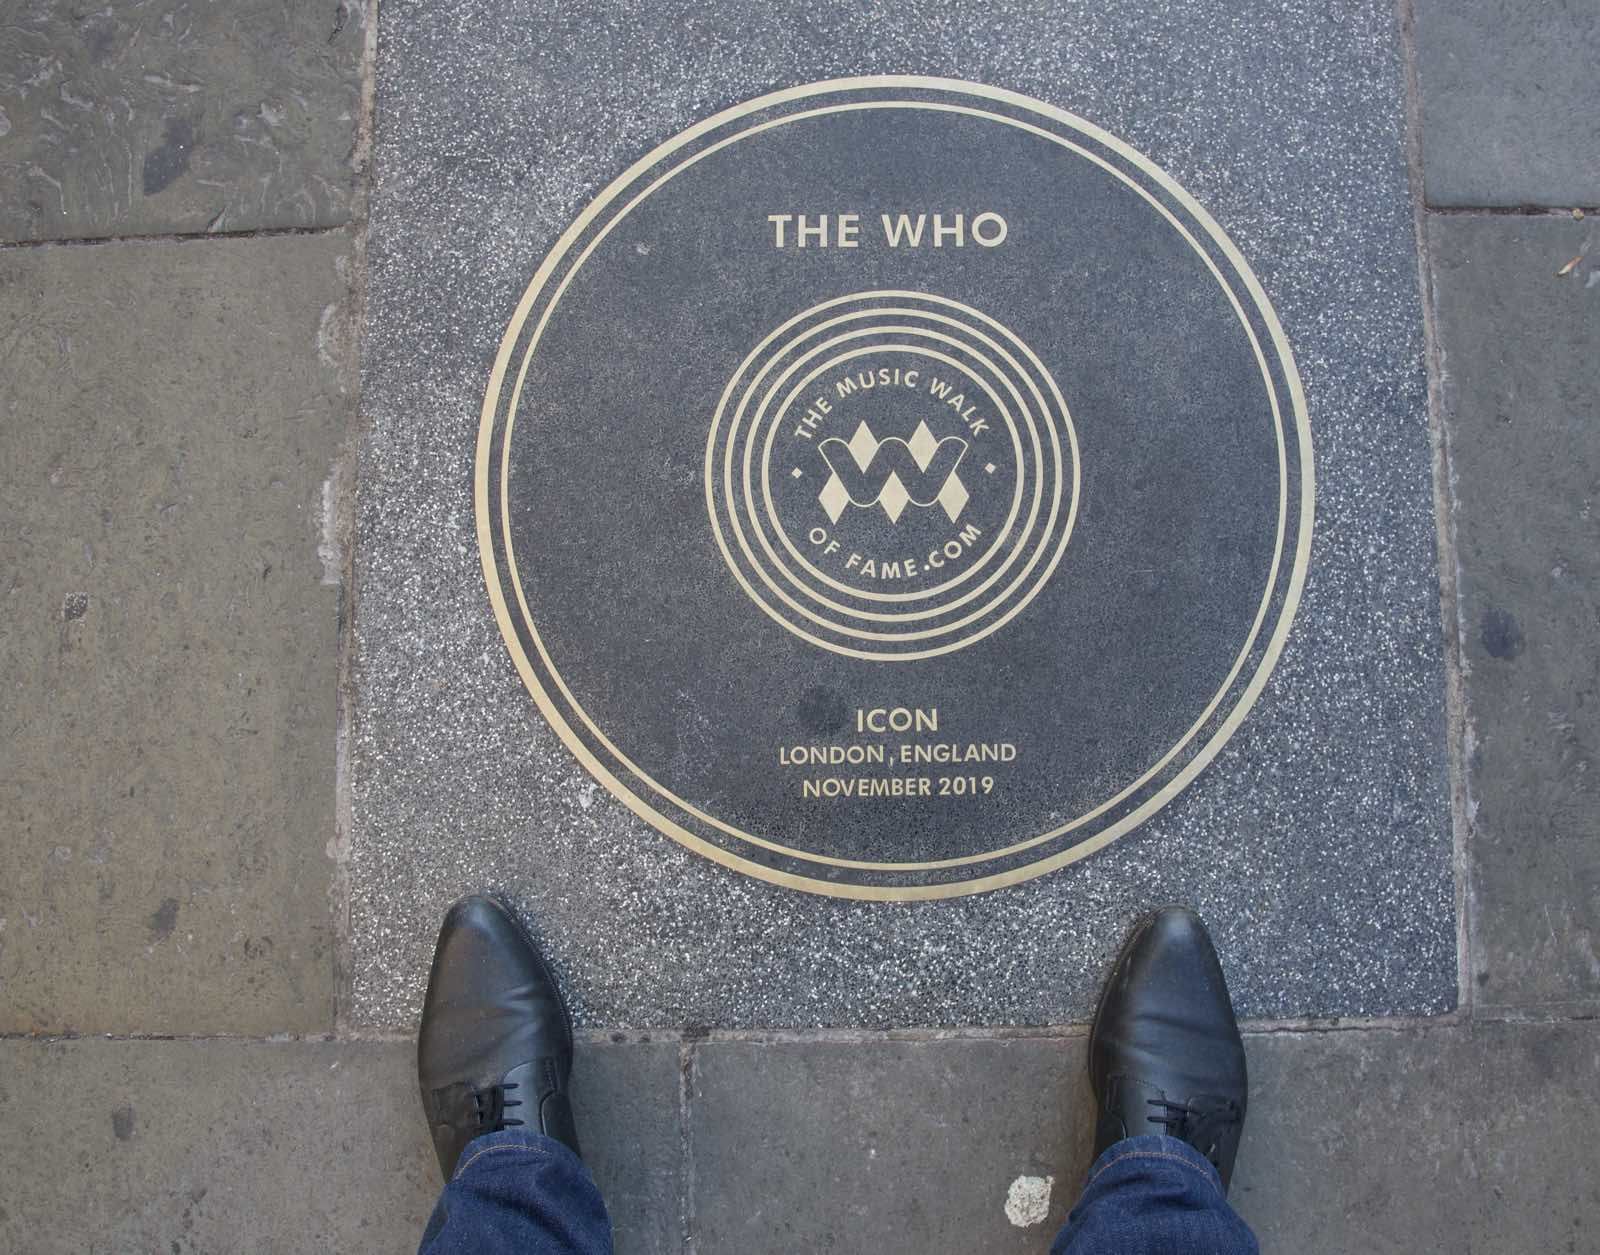 Camden Town has a rich musical history - and the new Walk of Fame